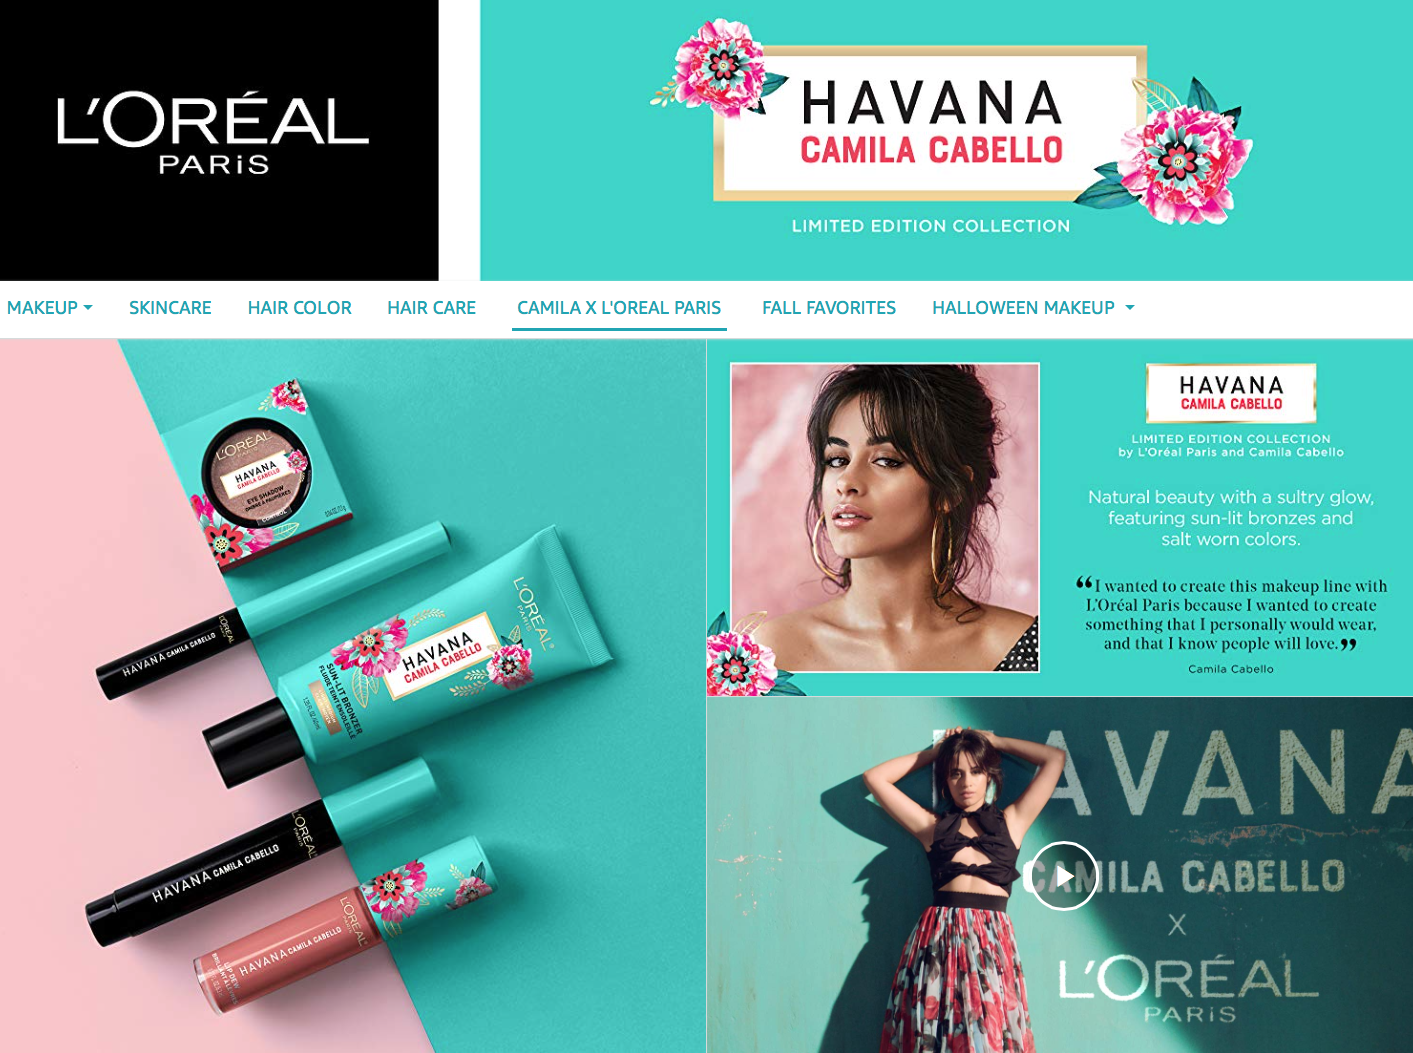 limite edition camila cabello loreal paris makeup collection